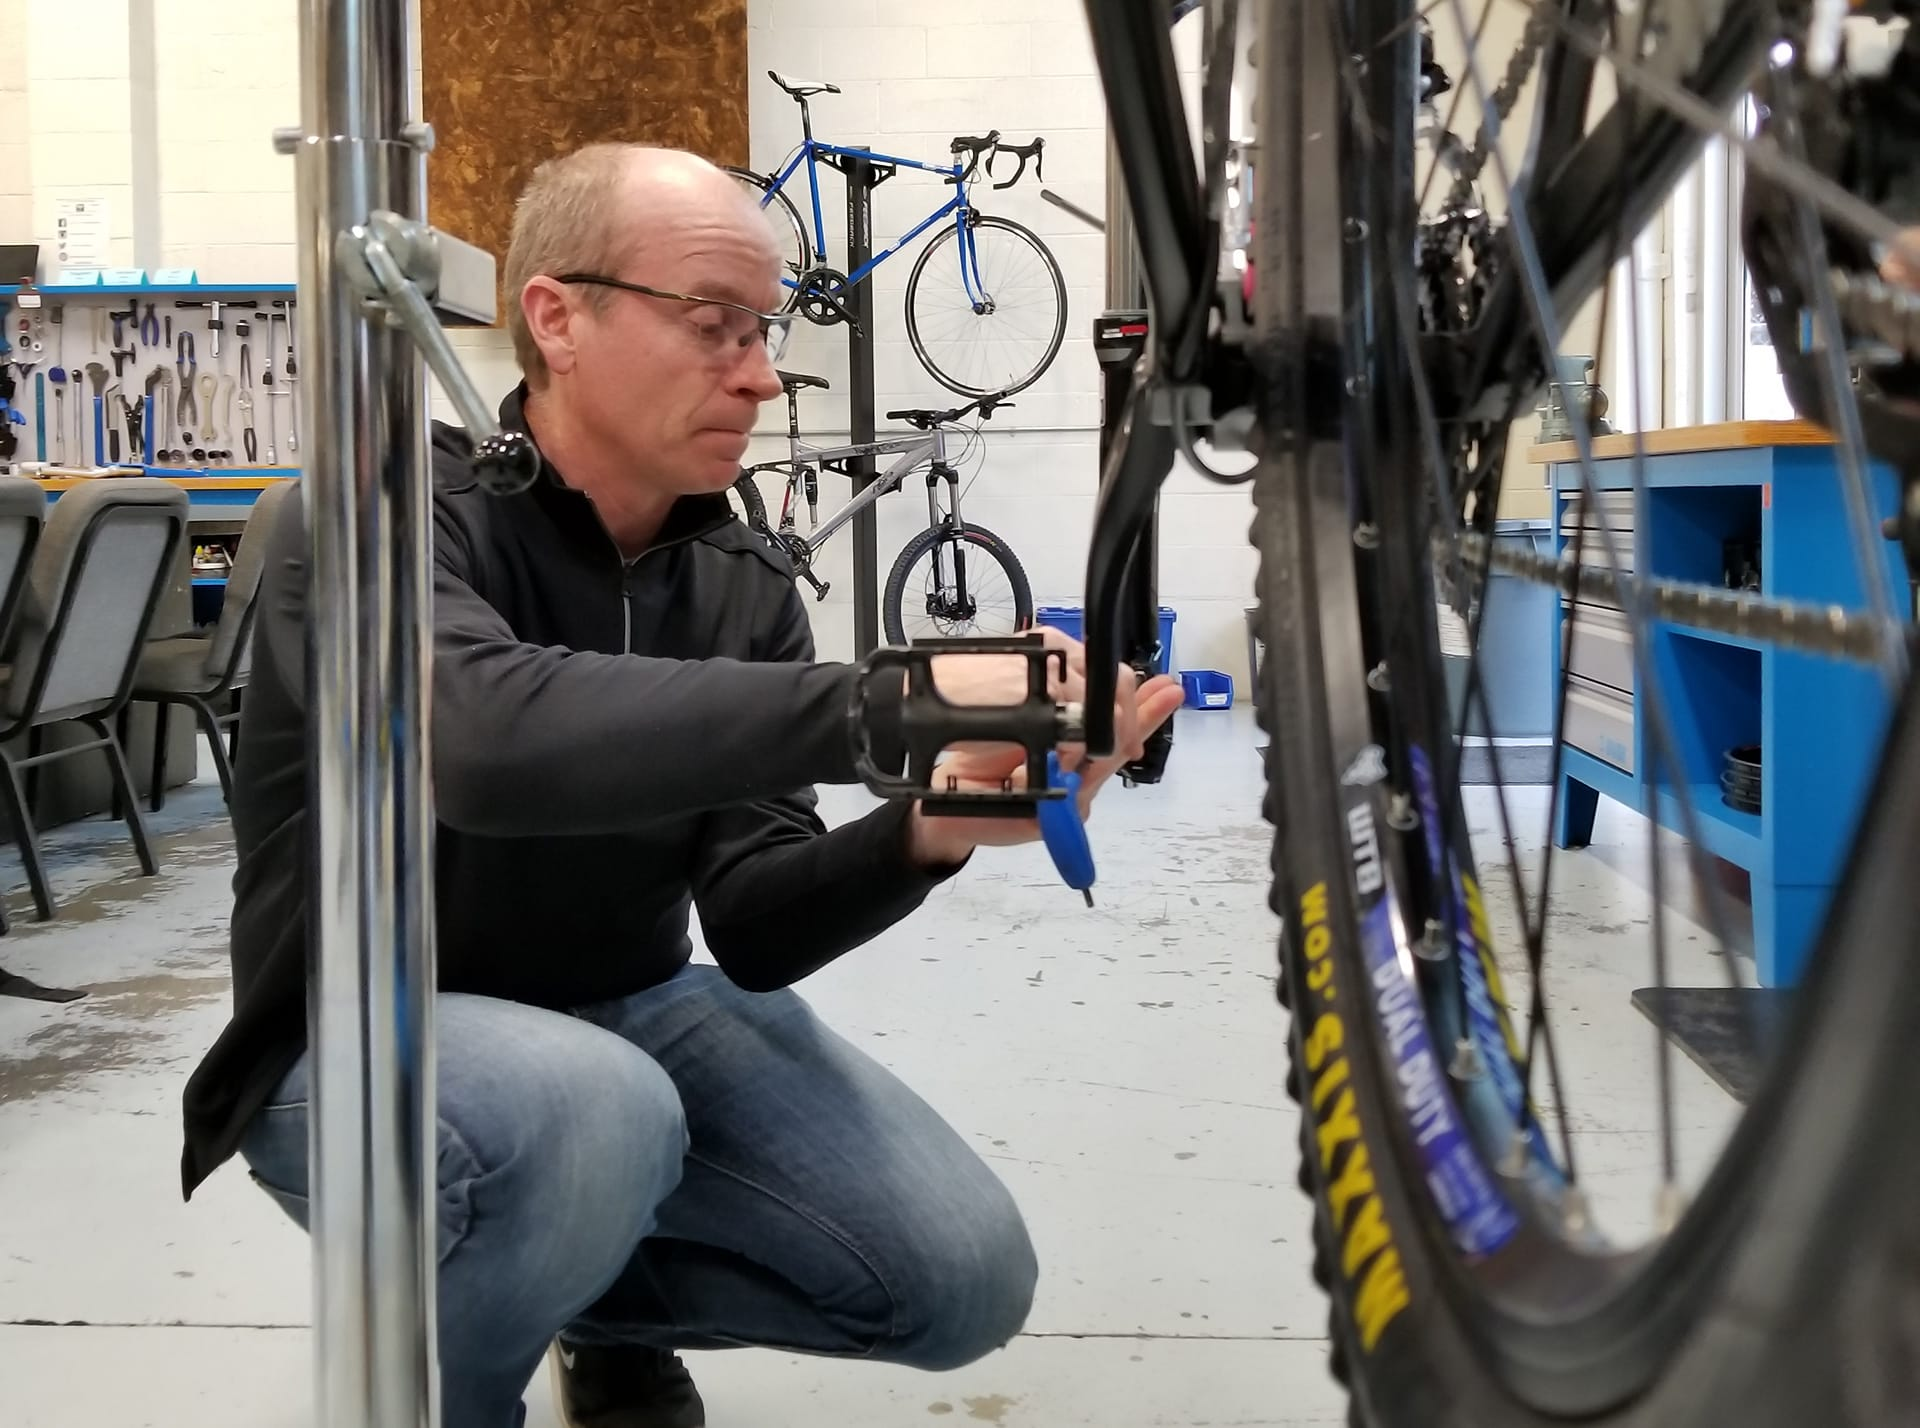 Bike repair in vancouver Washington area